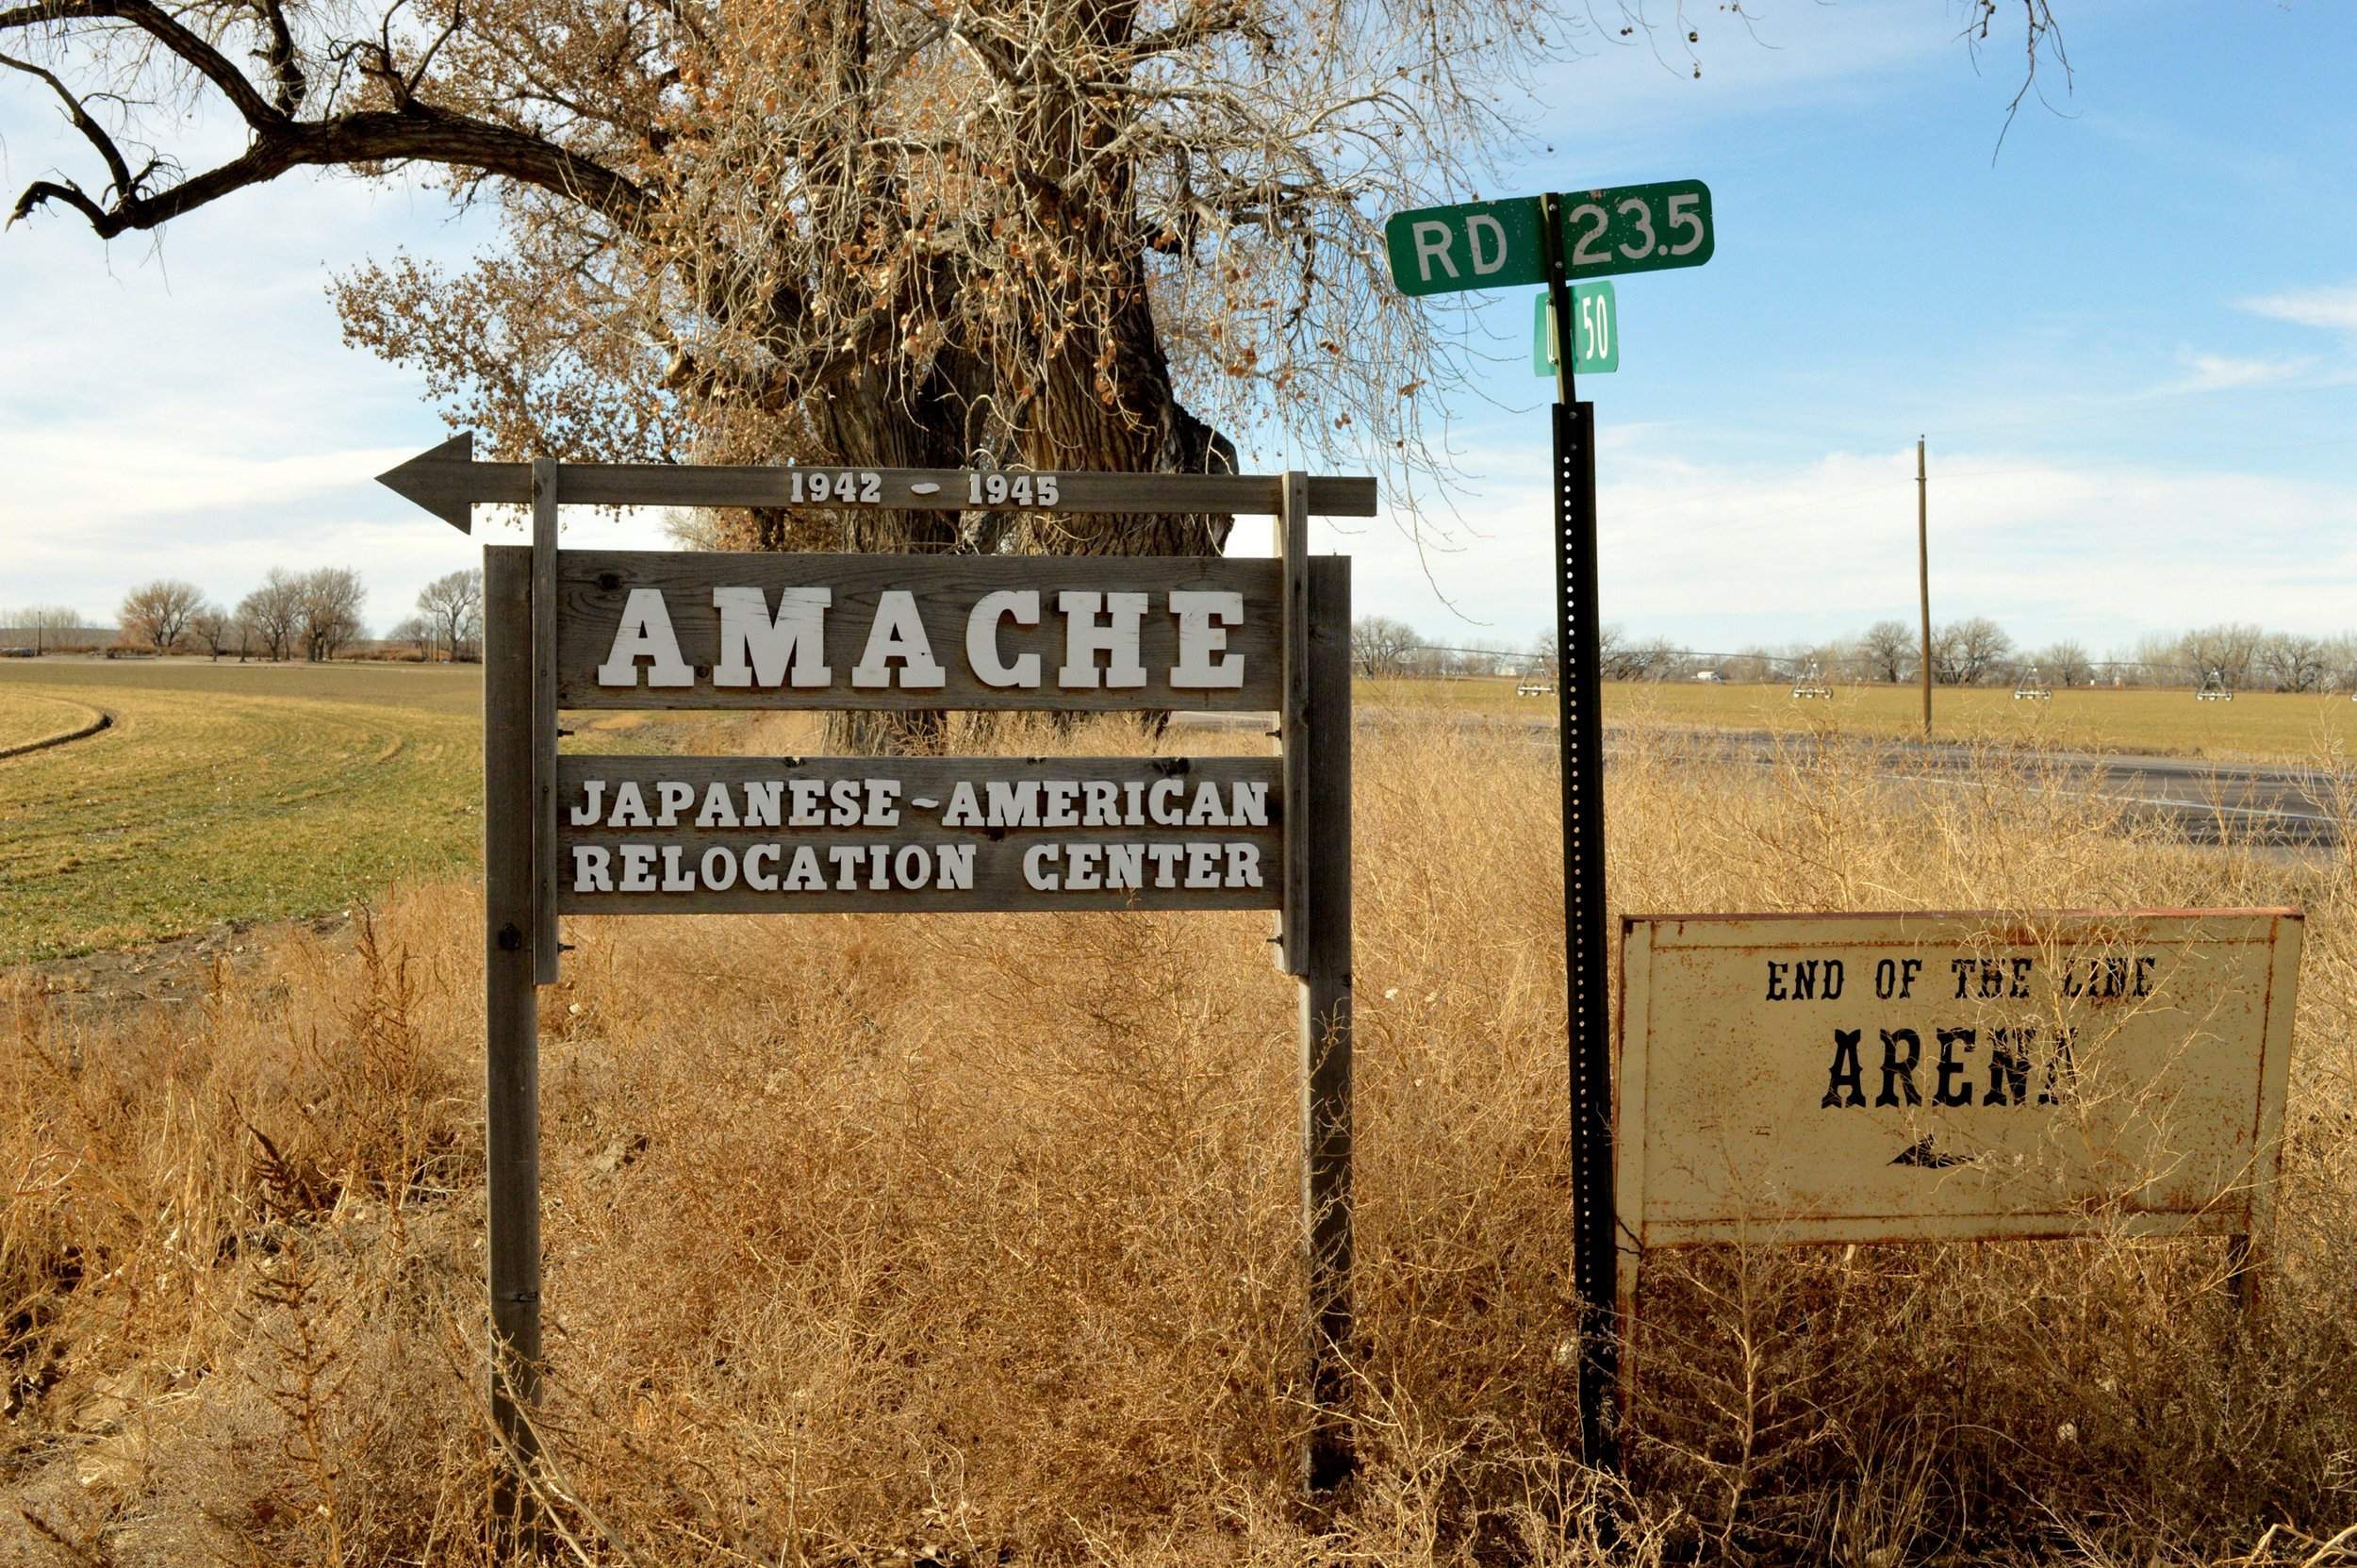 Drones Help Map Japanese Internment Camp In Eastern Colorado - Map-of-japanese-internment-camps-in-us